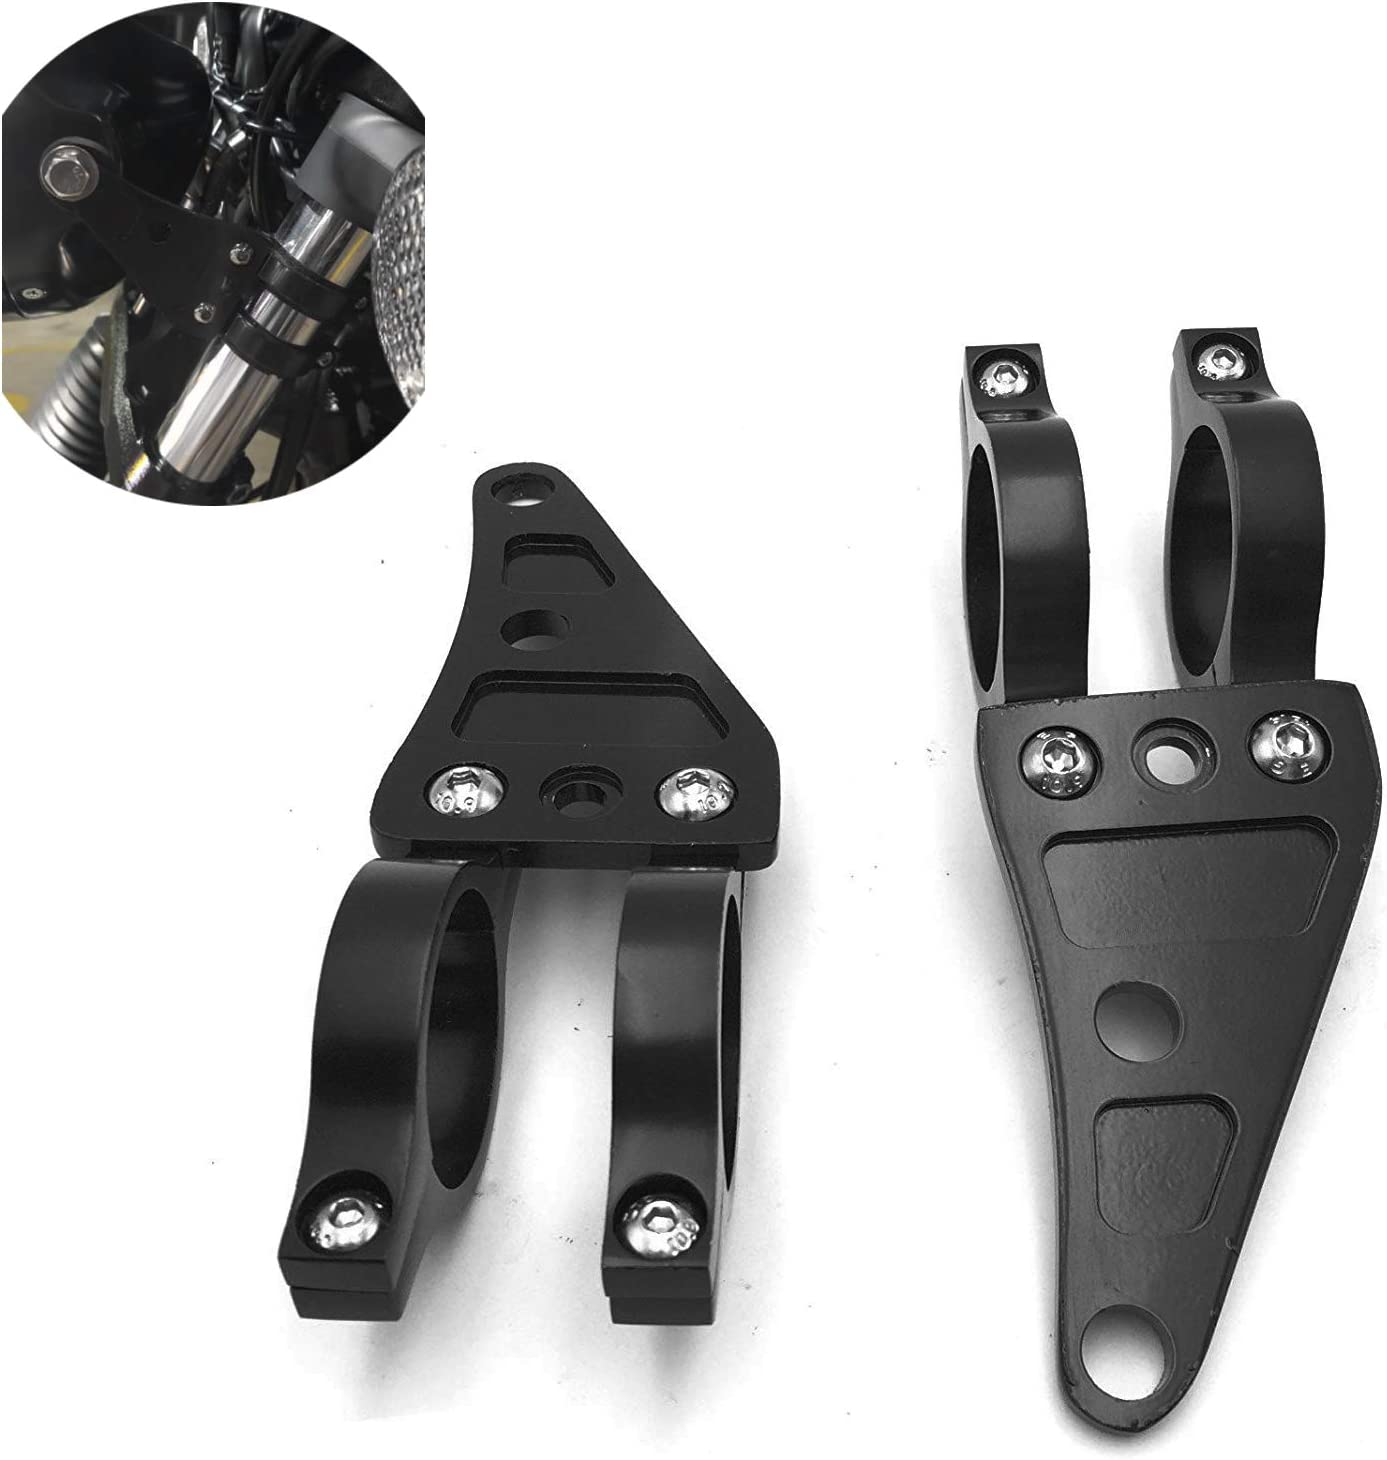 Xitomer 1 Pair for Front Fork Tubes 41mm 41mm for 7 or 5.75 Round Headlight CNC Mount Headlight Brackets